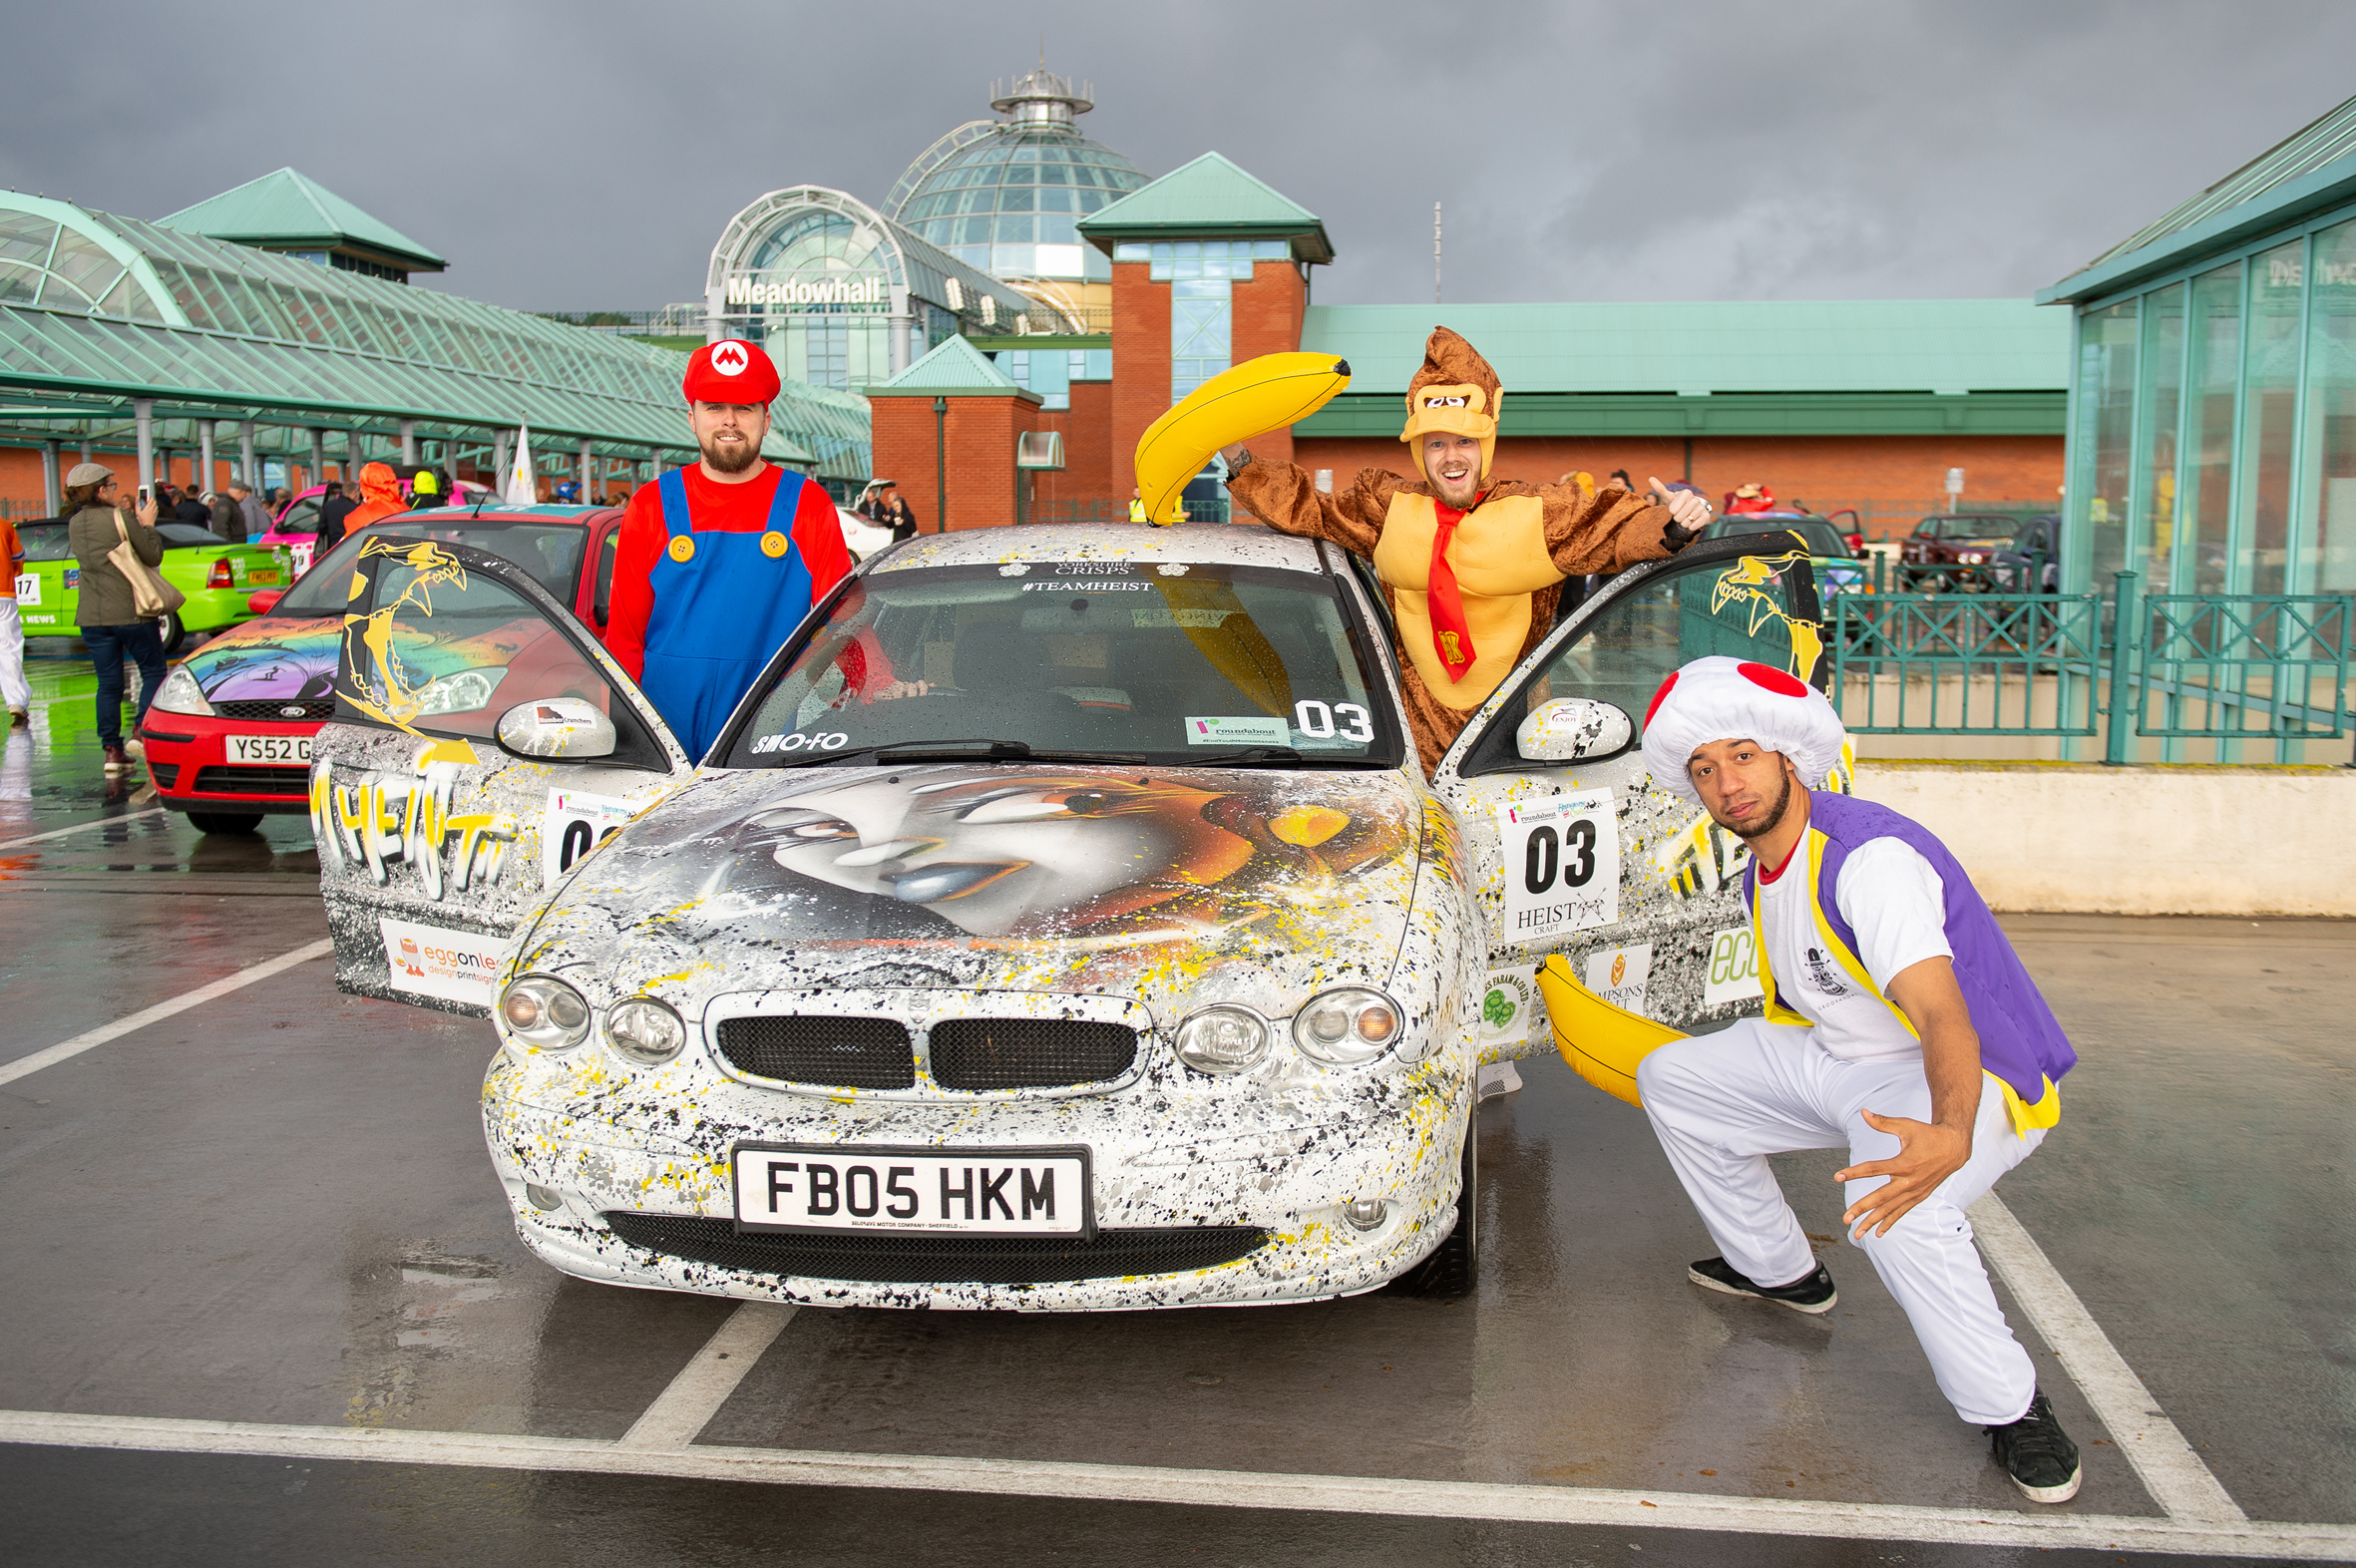 Rally Motor Credit >> Spectacular Convoy Of Colour As Fundraising Banger Rally Sets Off